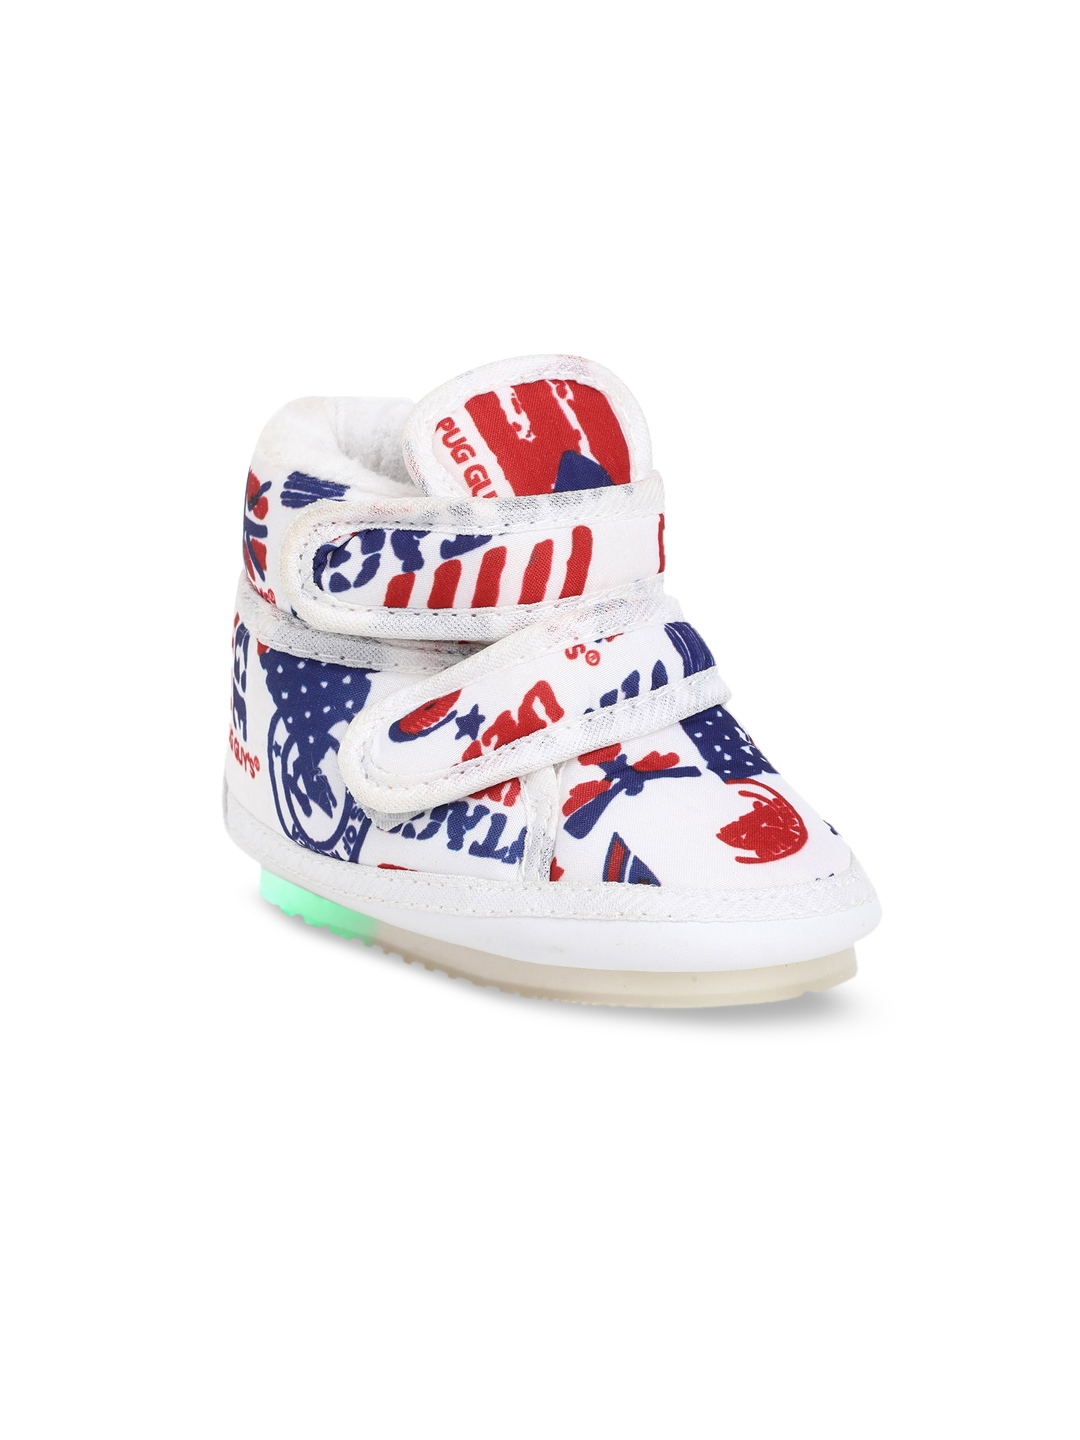 CHiU Kids White   Blue Printed Sneakers With LED Lights